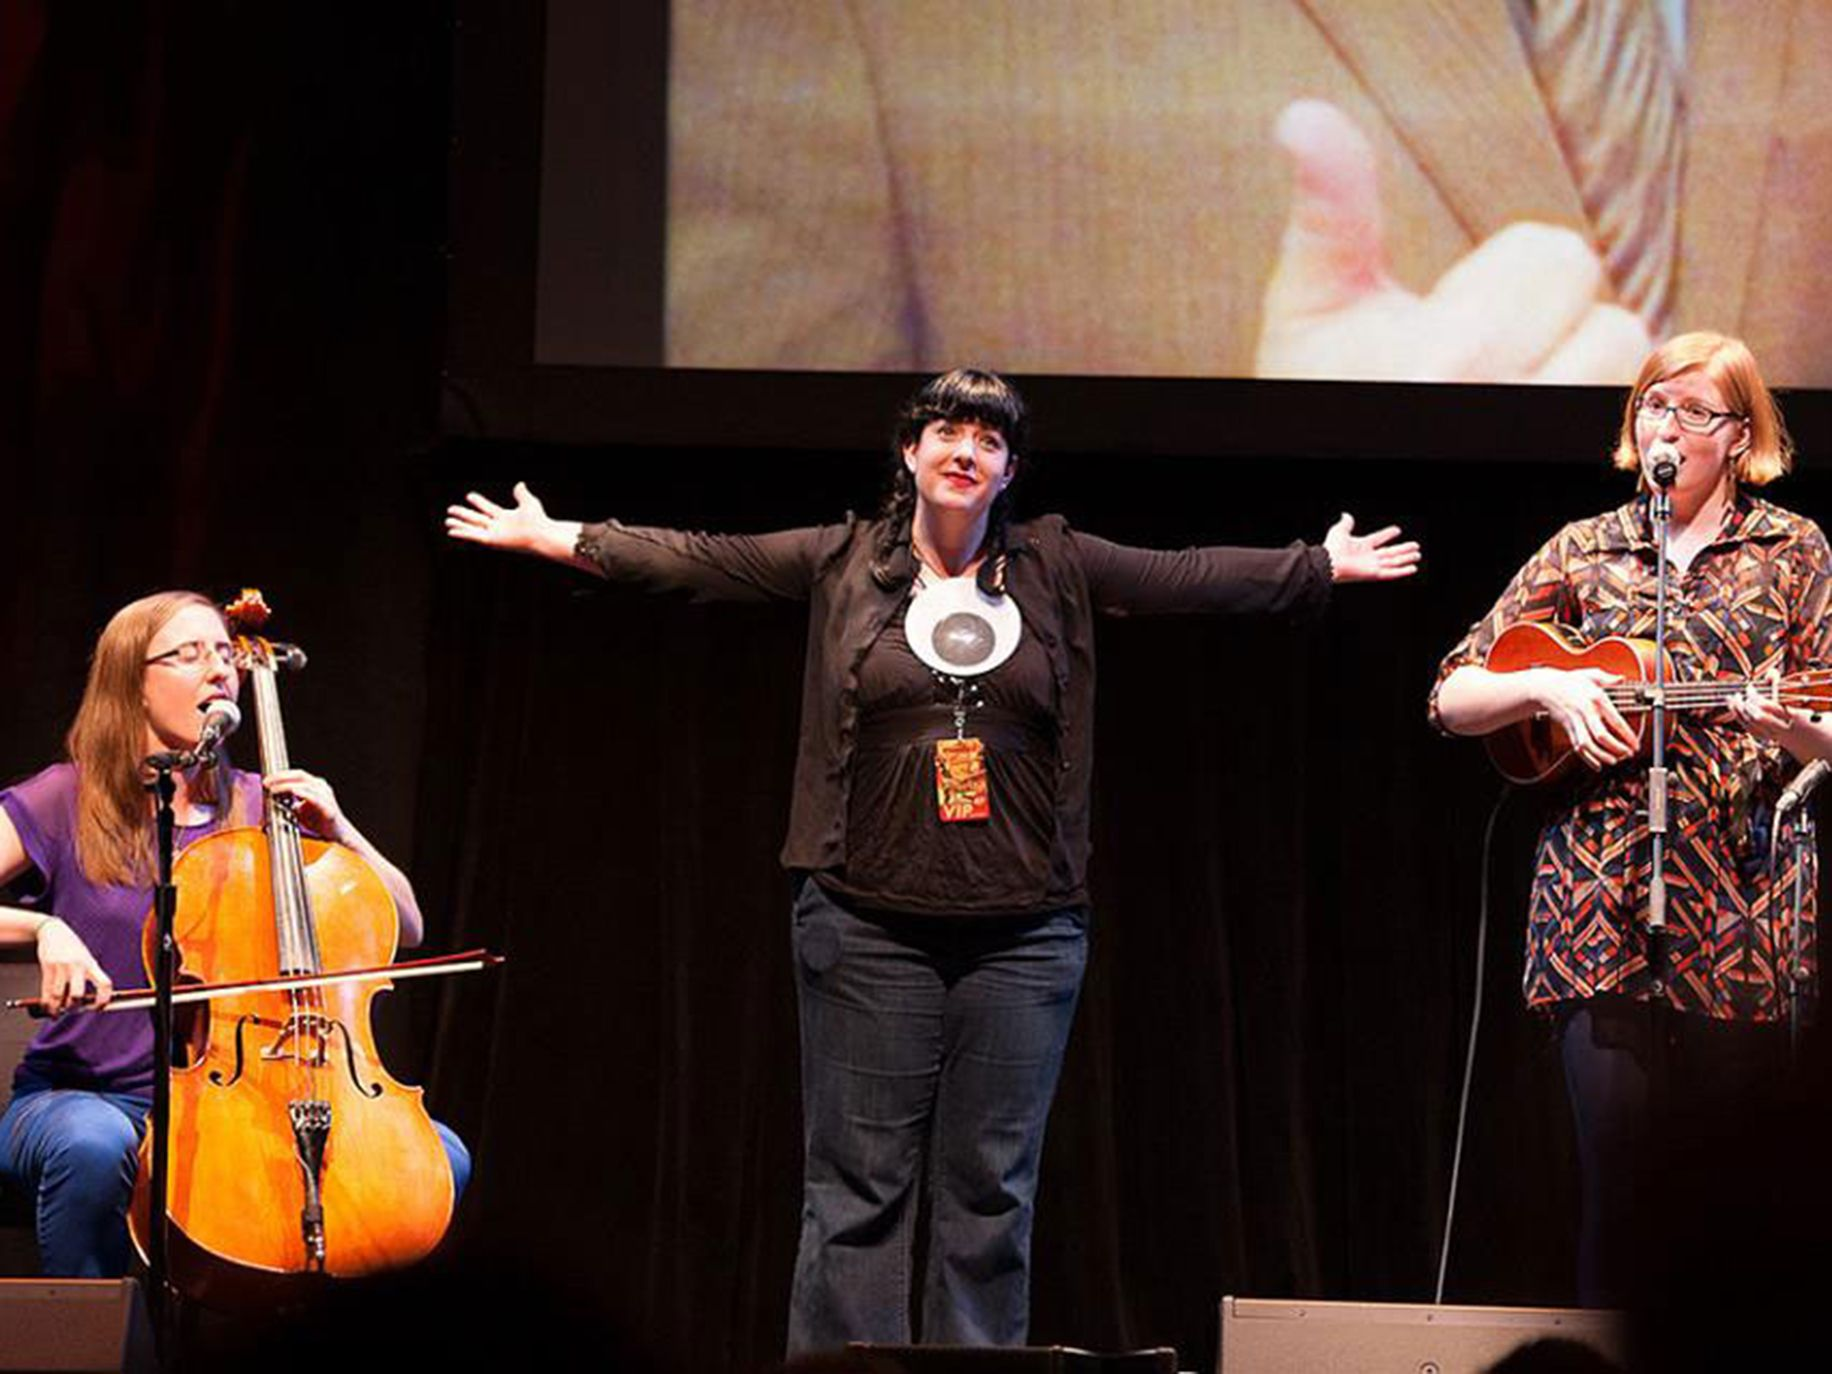 Bonnie Burton on stage with The Doubleclicks band at w00tstock San Diego.